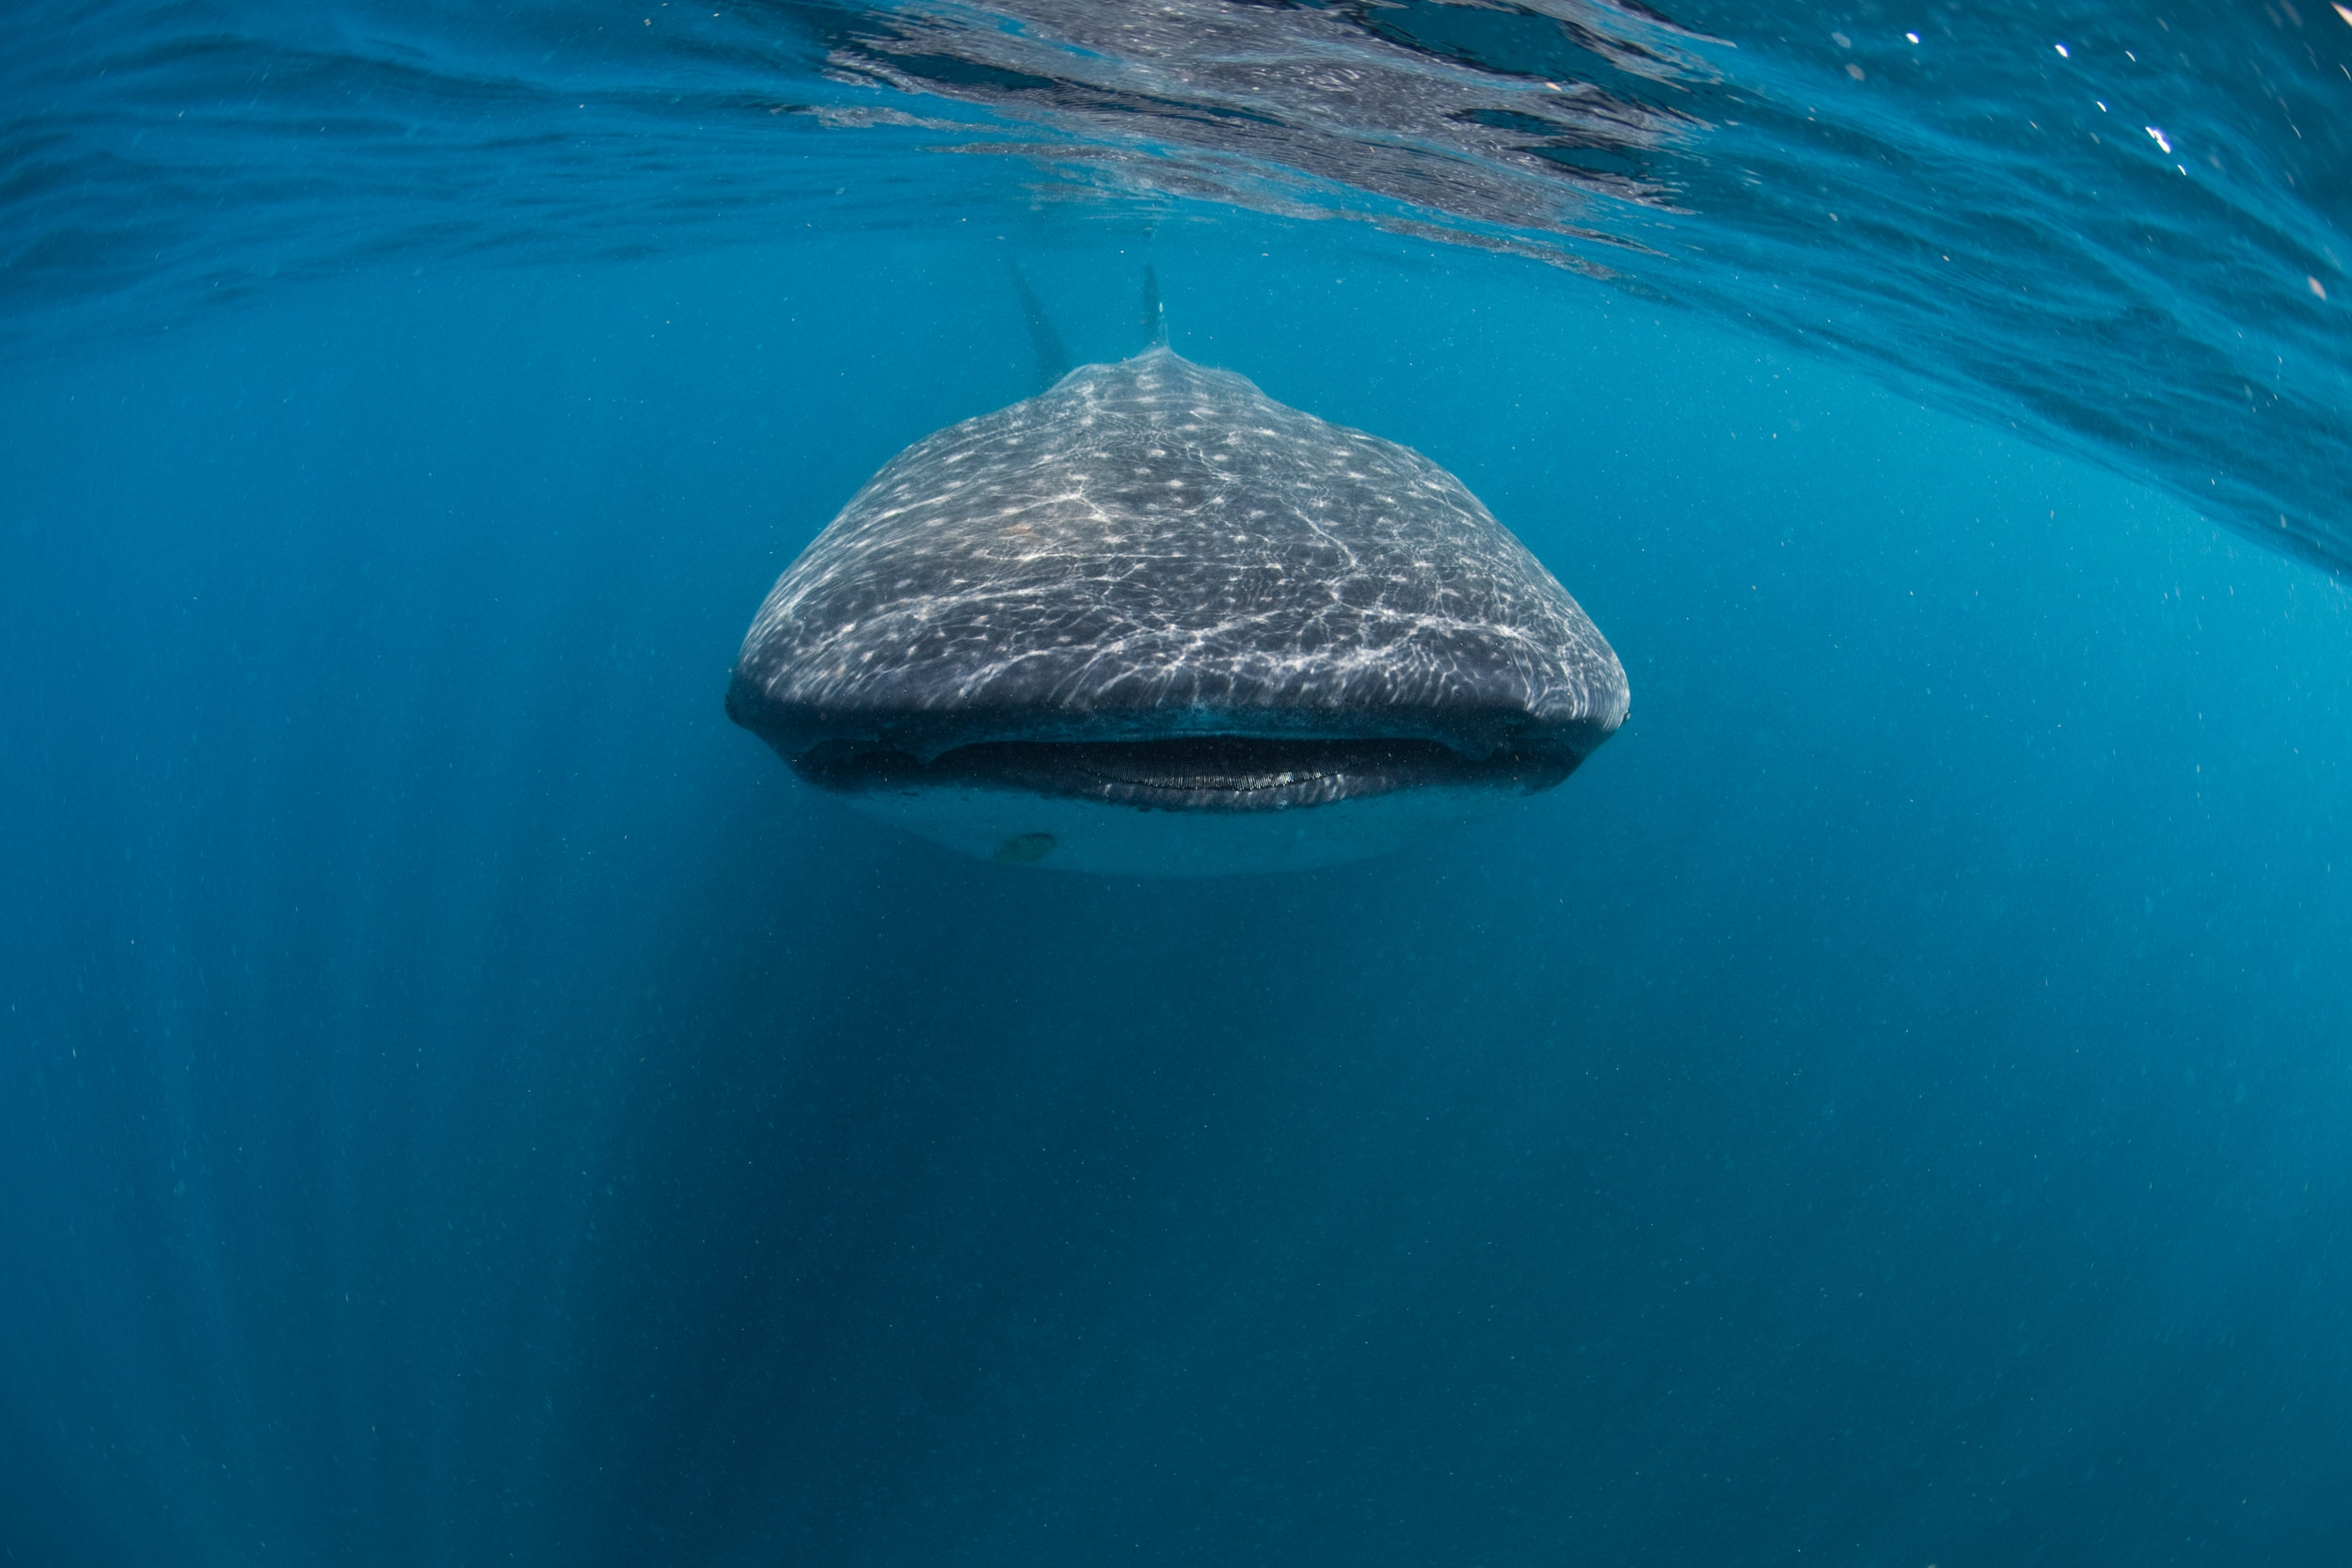 WHALE SHARK CREDIT: ANDY CASAGRANDE / coral reef image bank